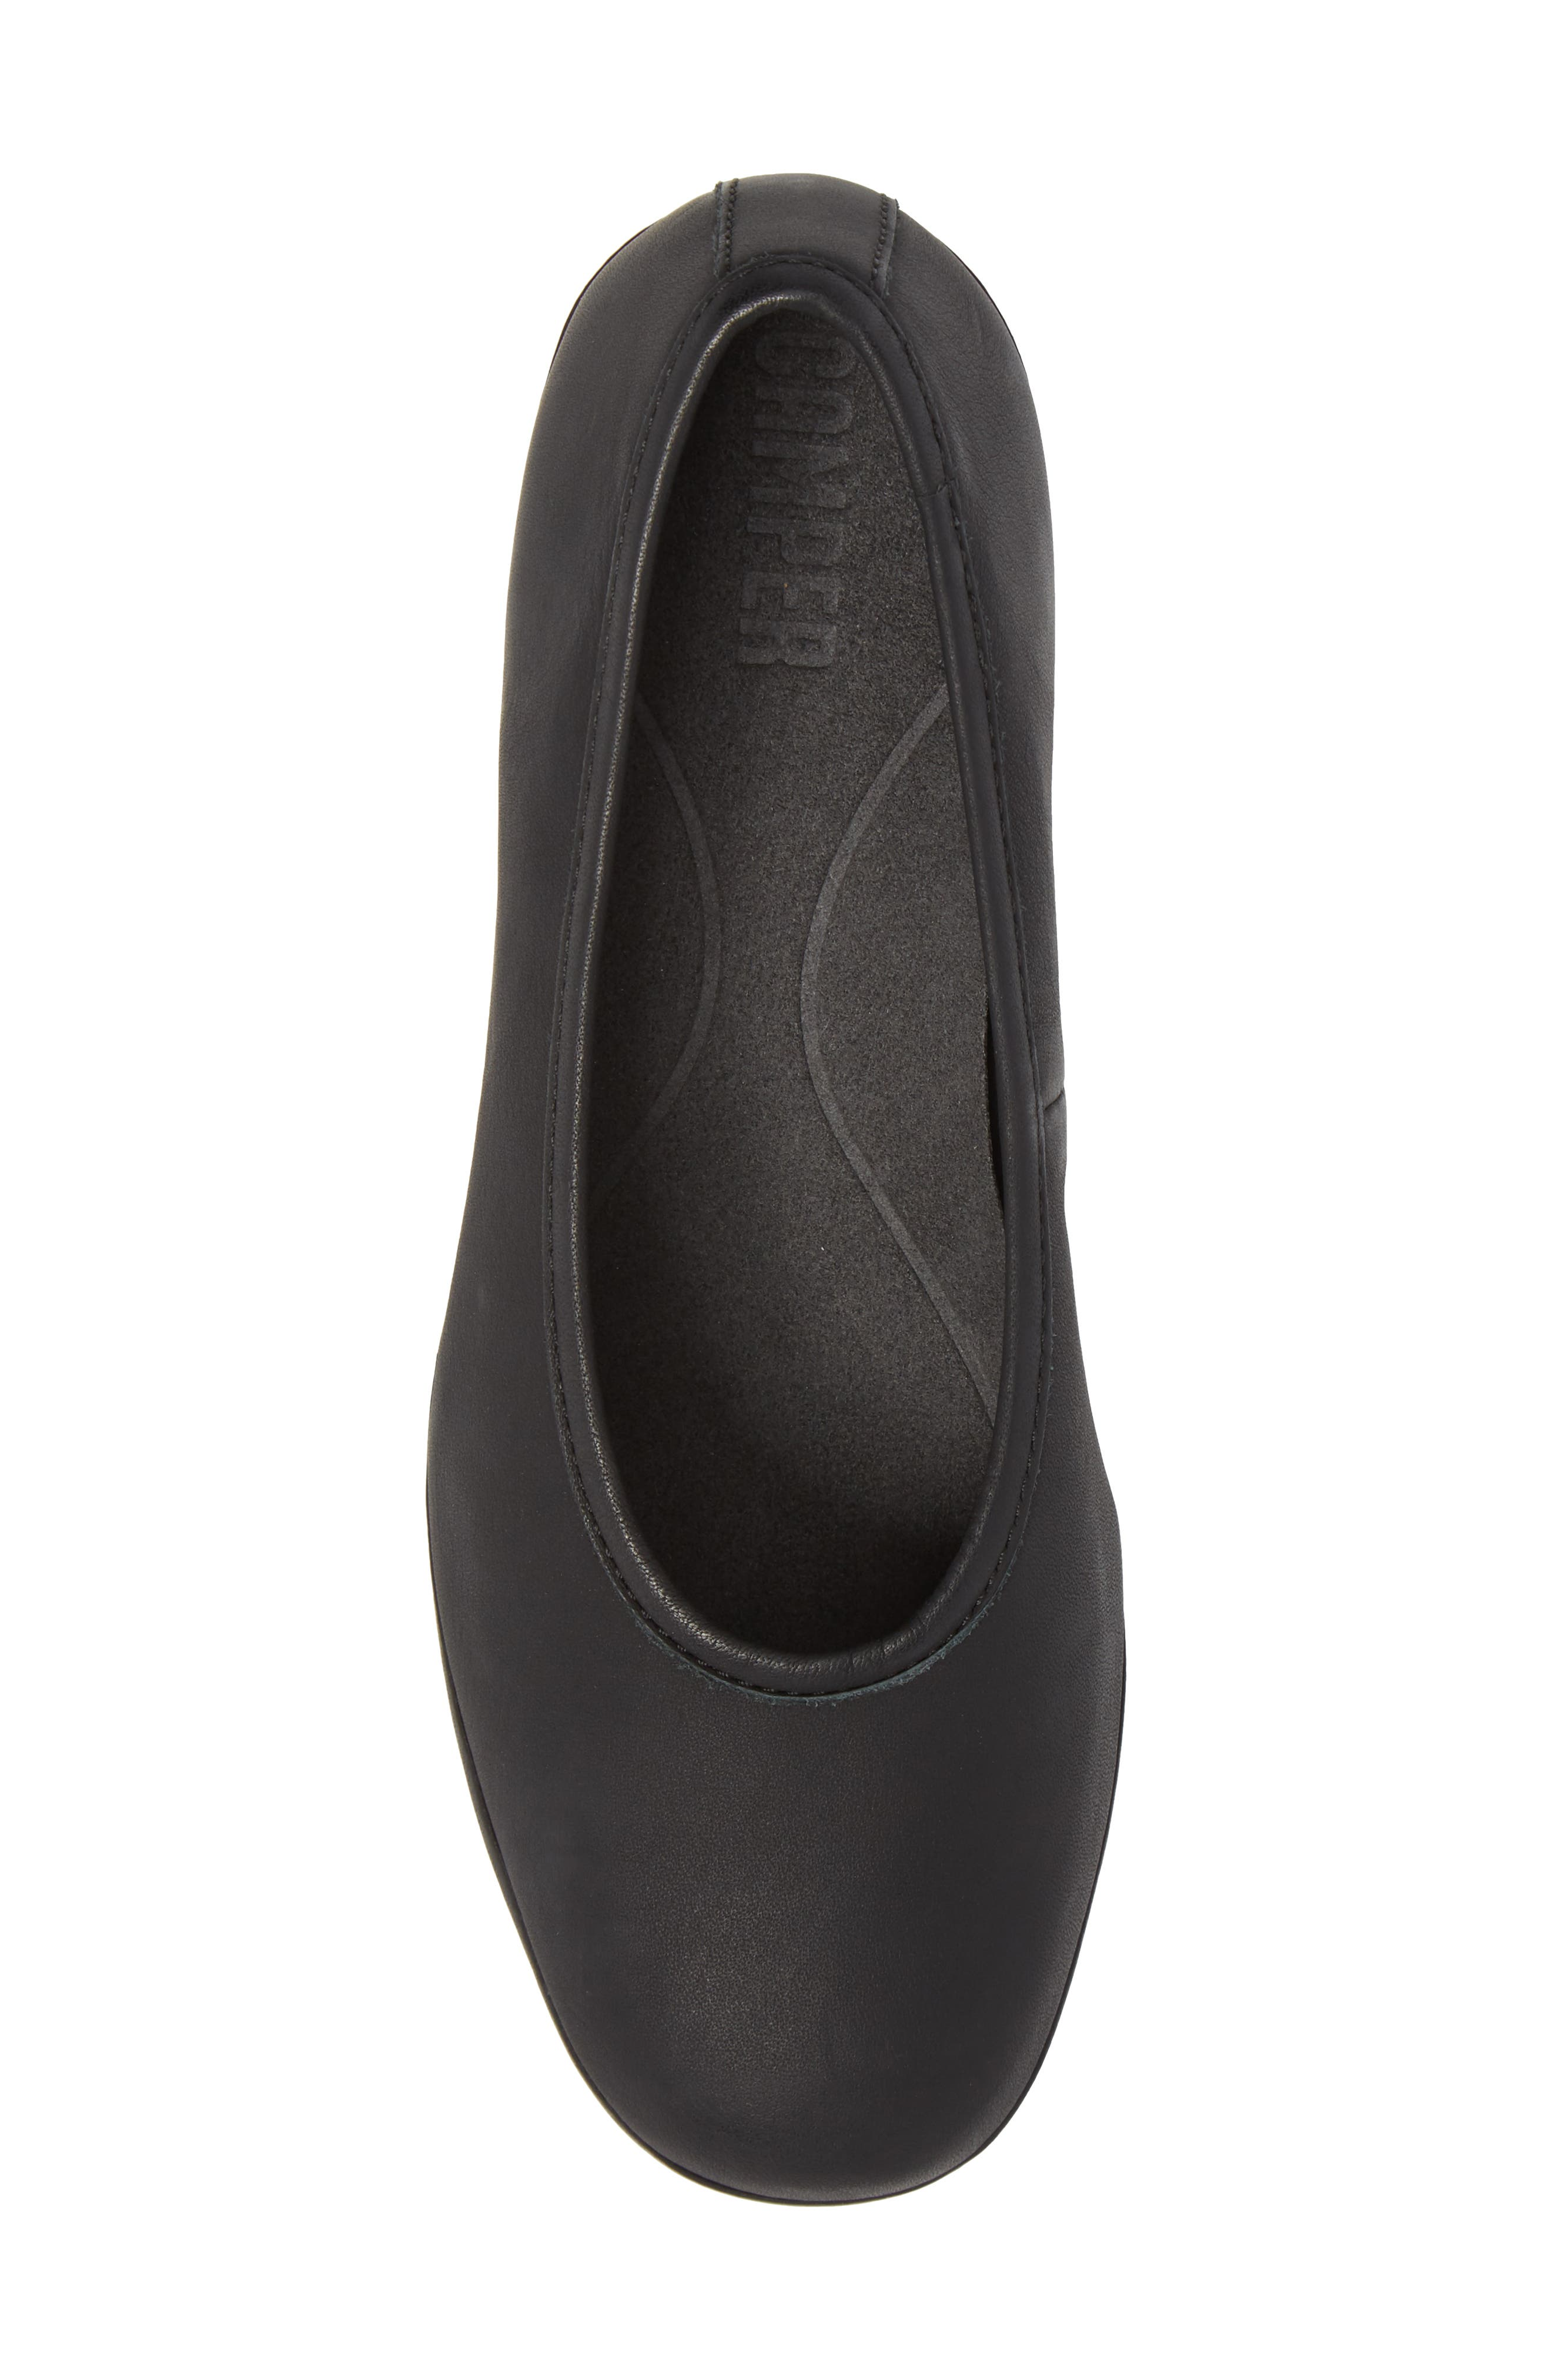 Alright Cone Heel Pump,                             Alternate thumbnail 5, color,                             Black Leather